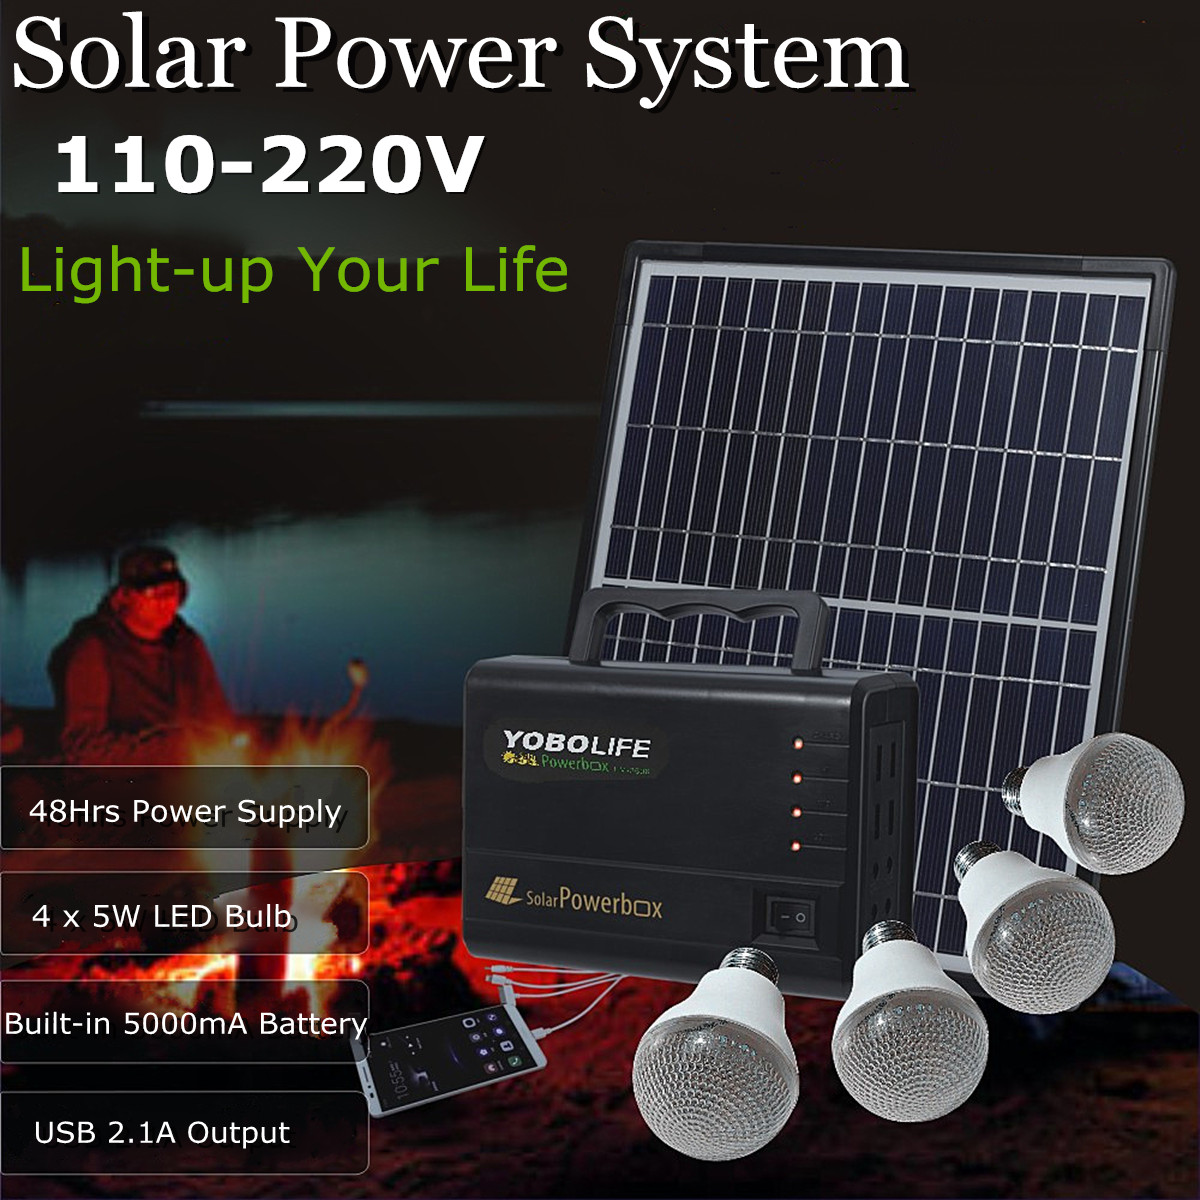 YOBOLIFE 18W Solar Panel Portable Solar Powered System Power Generator with 4 LED Light